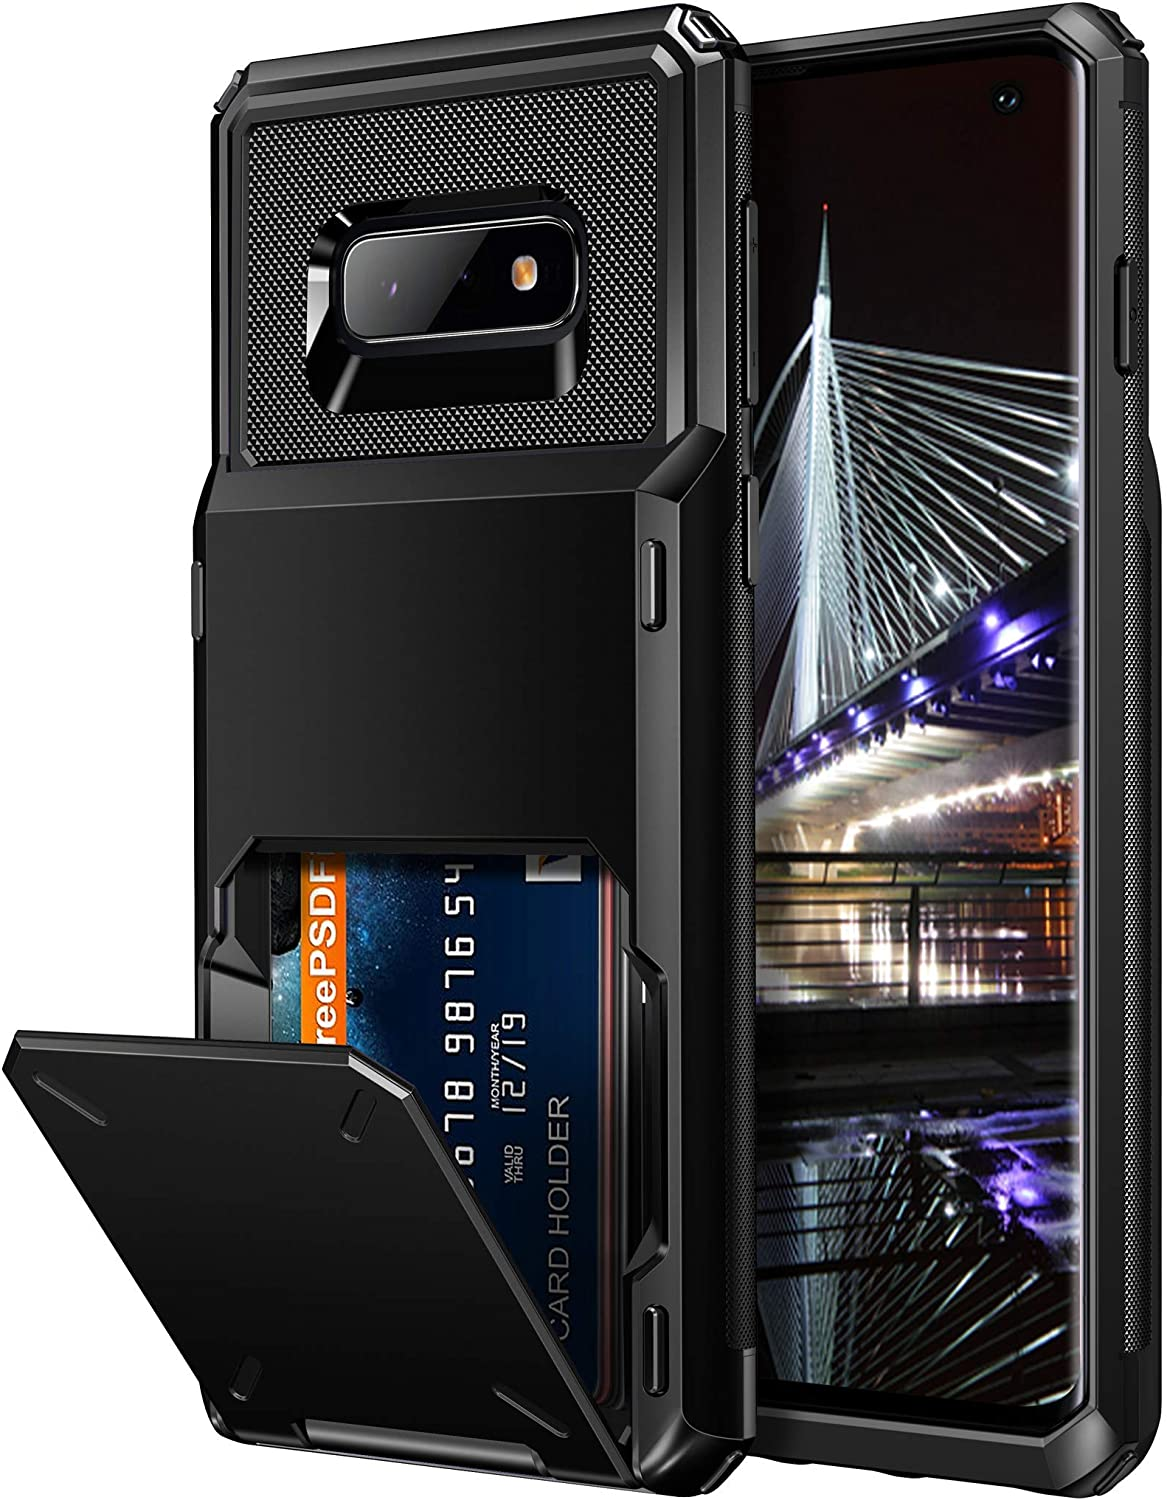 Vofolen for Galaxy S10e Wallet Case with Credit Card Holder [4 Card Pocket] Slot Scratch Resistant Dual Layer Protective Bumper Tough Rubber Armor Hard Shell Cover Case for Samsung Galaxy S10 E Black